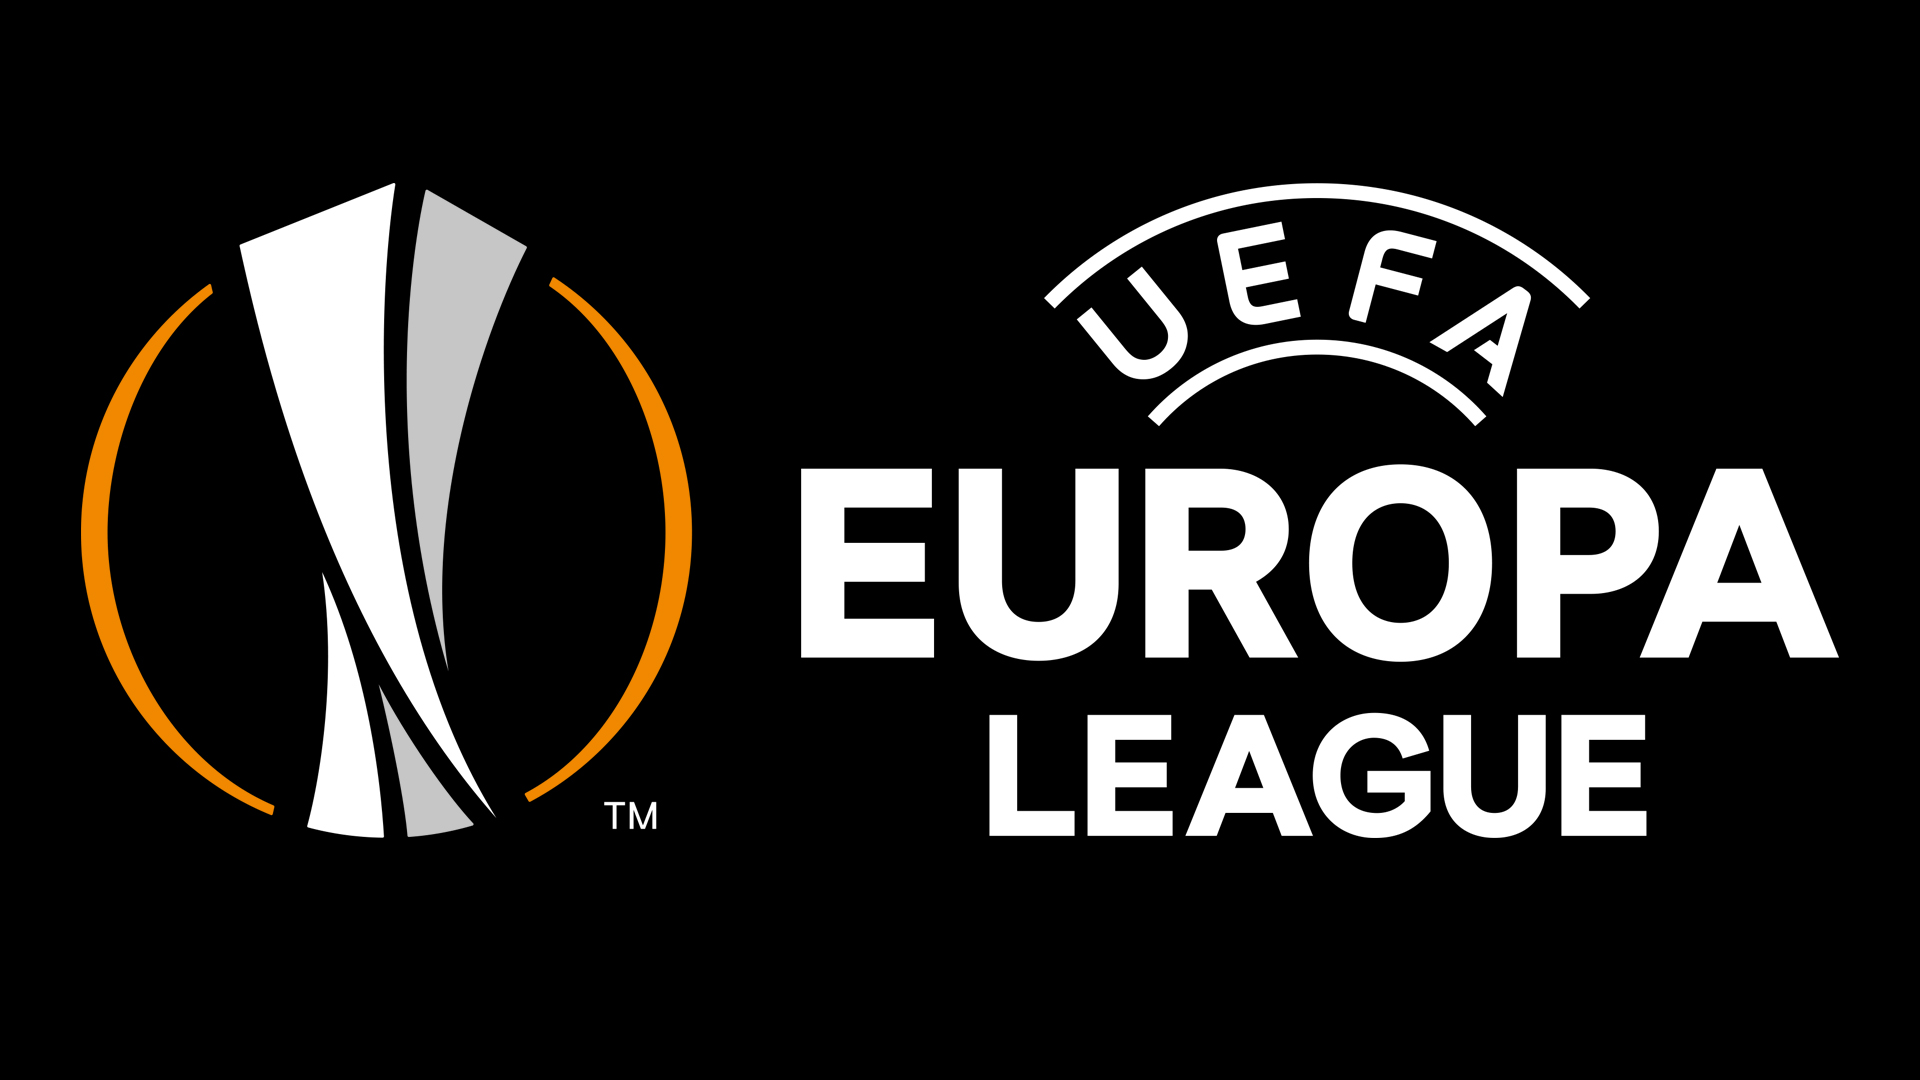 Download Uefa Europa League 2020